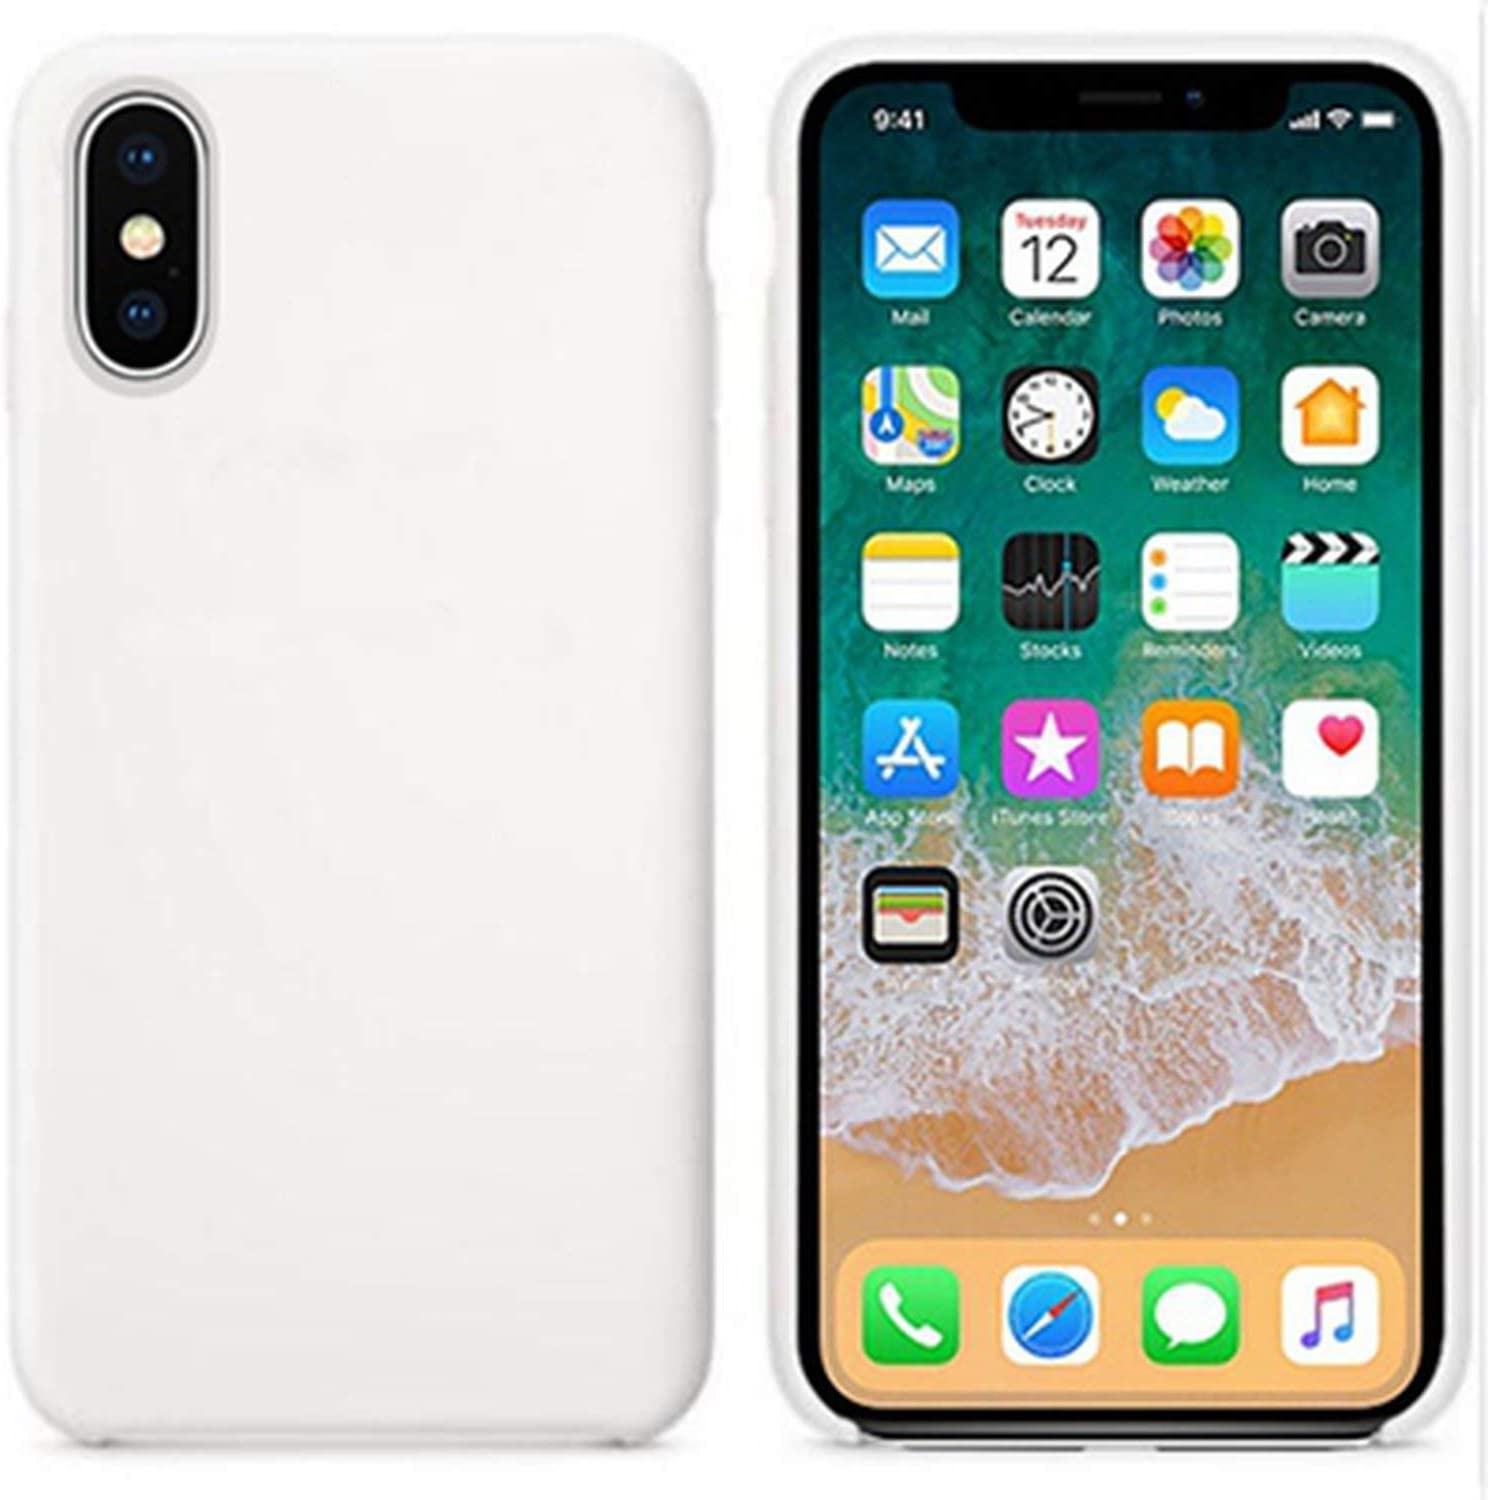 silicone case for iphone 6 6s 5 se7 8 plus x xs xr xs max silicon phone cover for retail box white for iphone 7 8 plus amazon ca cell phones accessories amazon ca